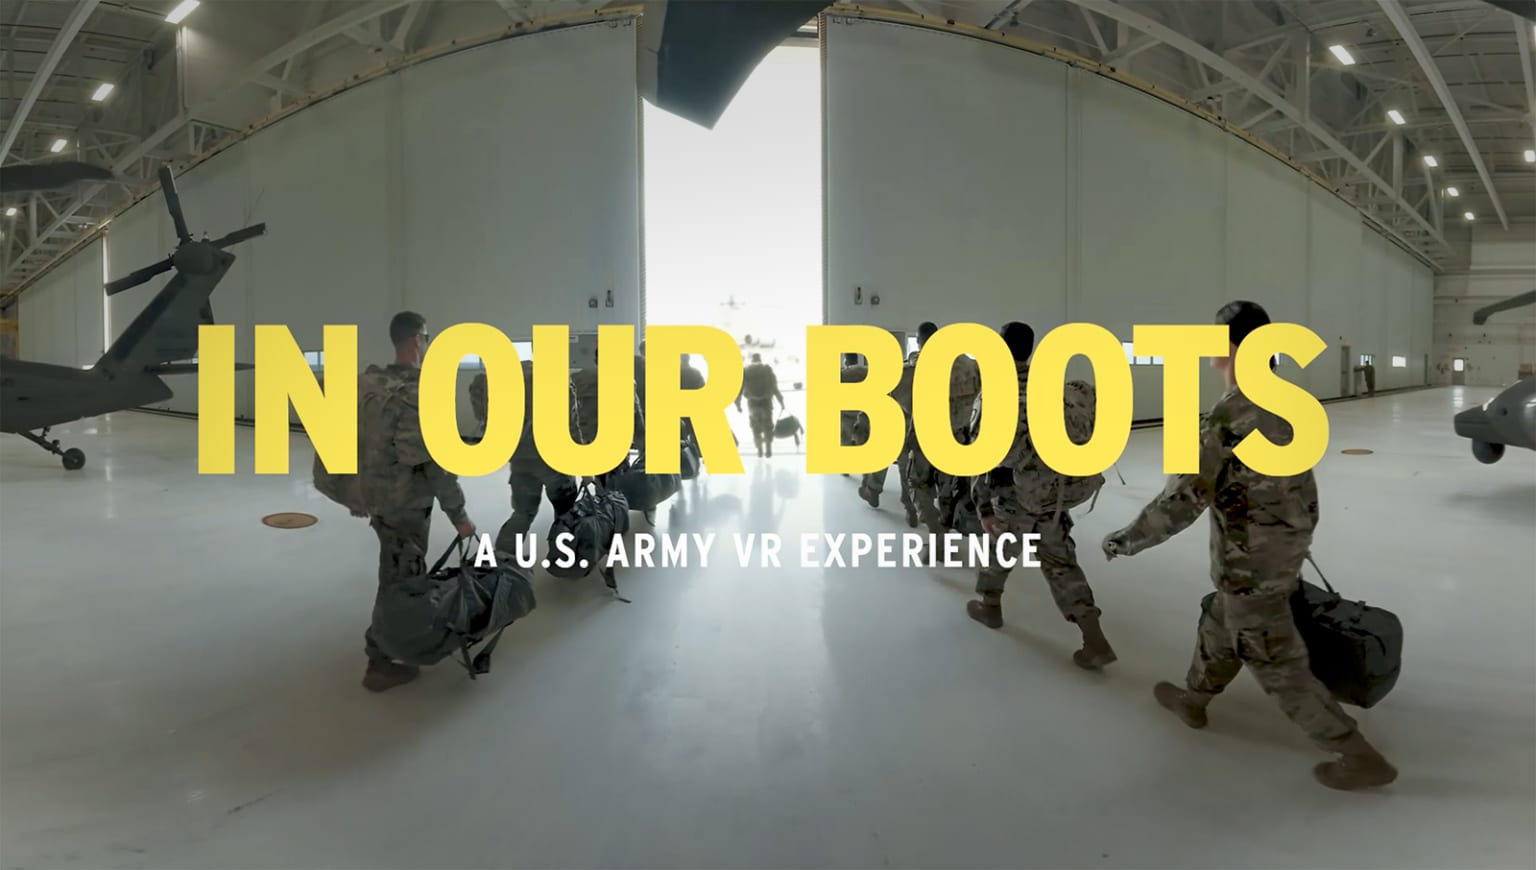 U.S. Army In our Boots